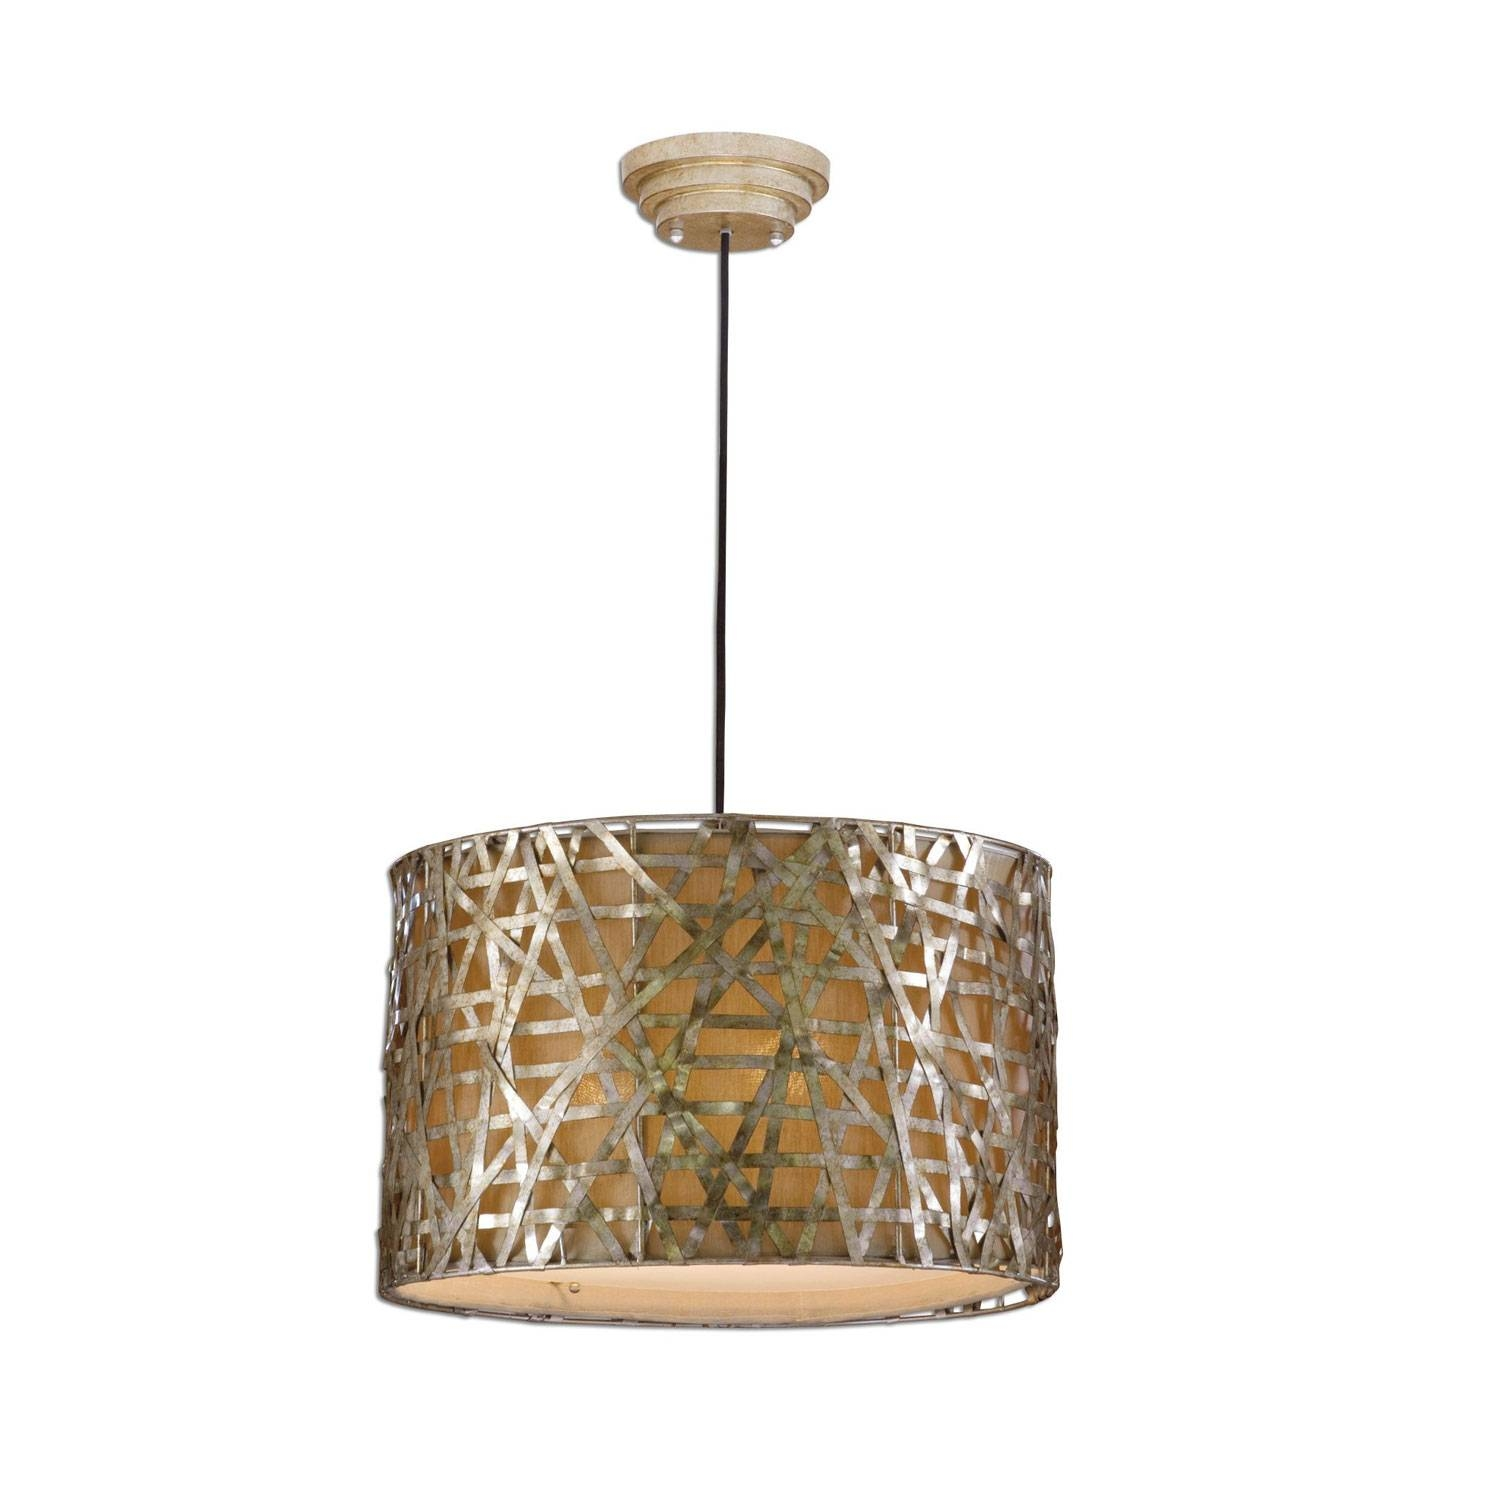 Uttermost Alita Drum Pendant On Sale pertaining to Uttermost Pendant Lights (Image 12 of 15)